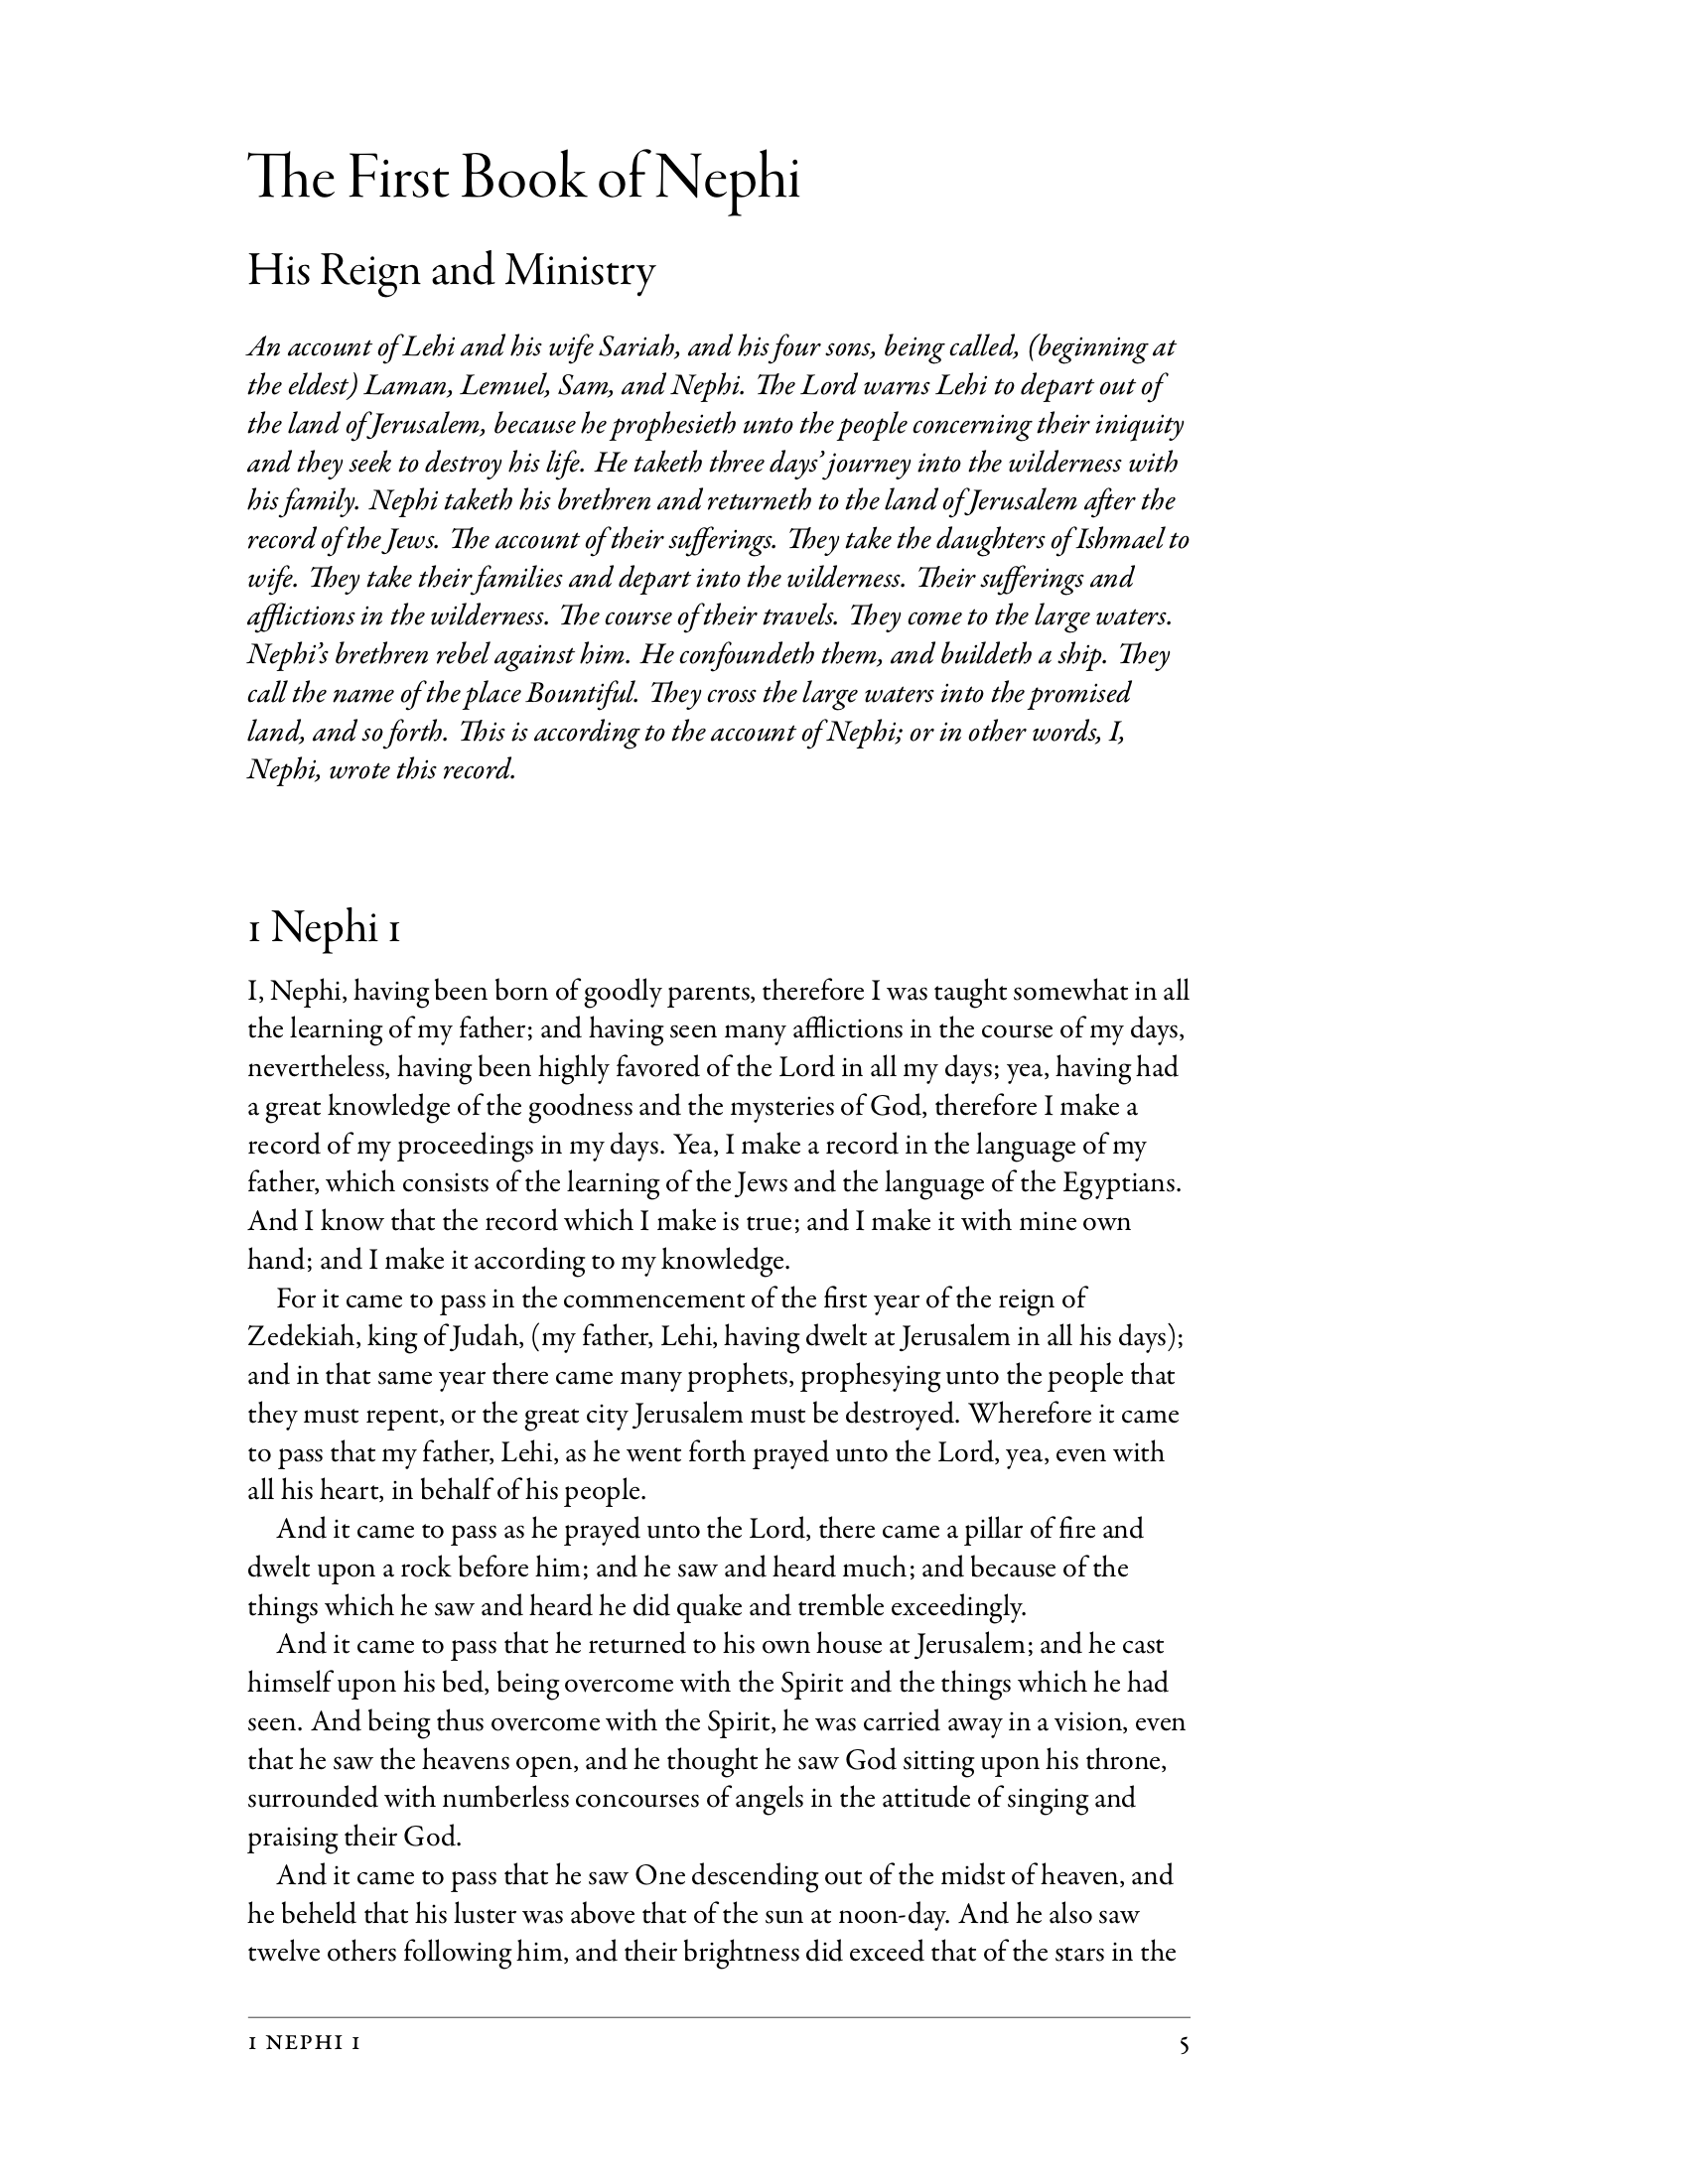 projects/readers-edition/readers-edition-eng-bofm-study-style-1nephi1.png?v1